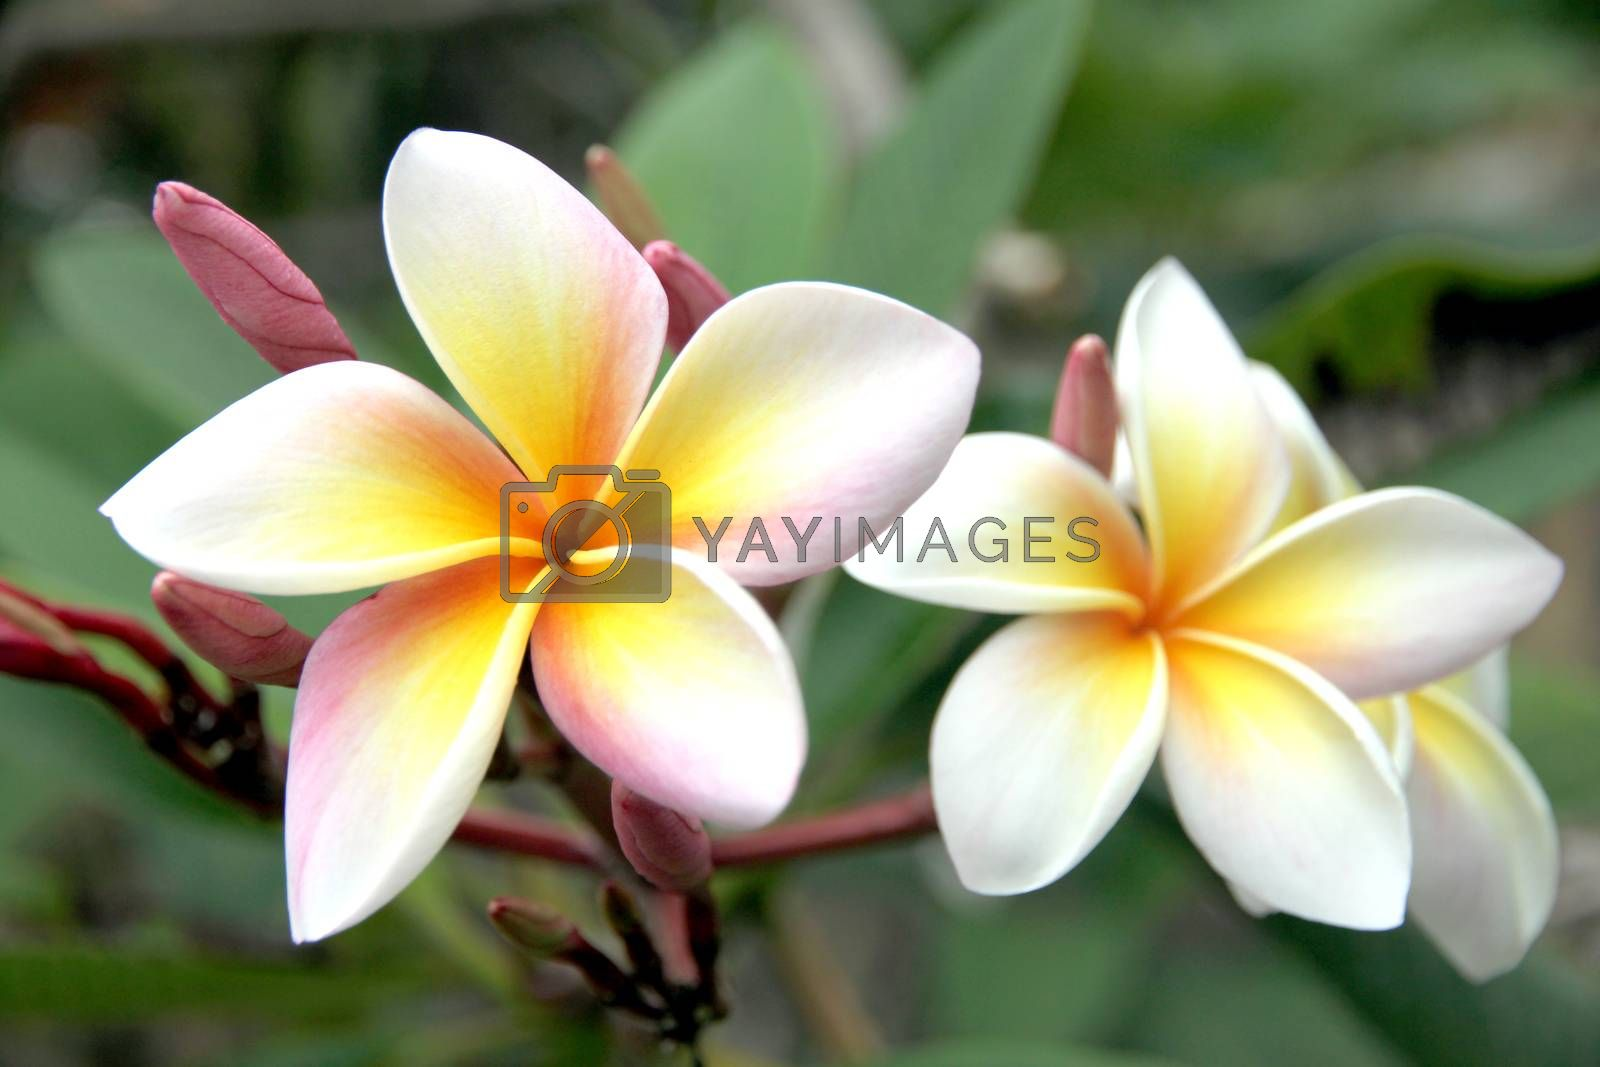 The Picture focus Frangipani flowers are yellowish white on tree.